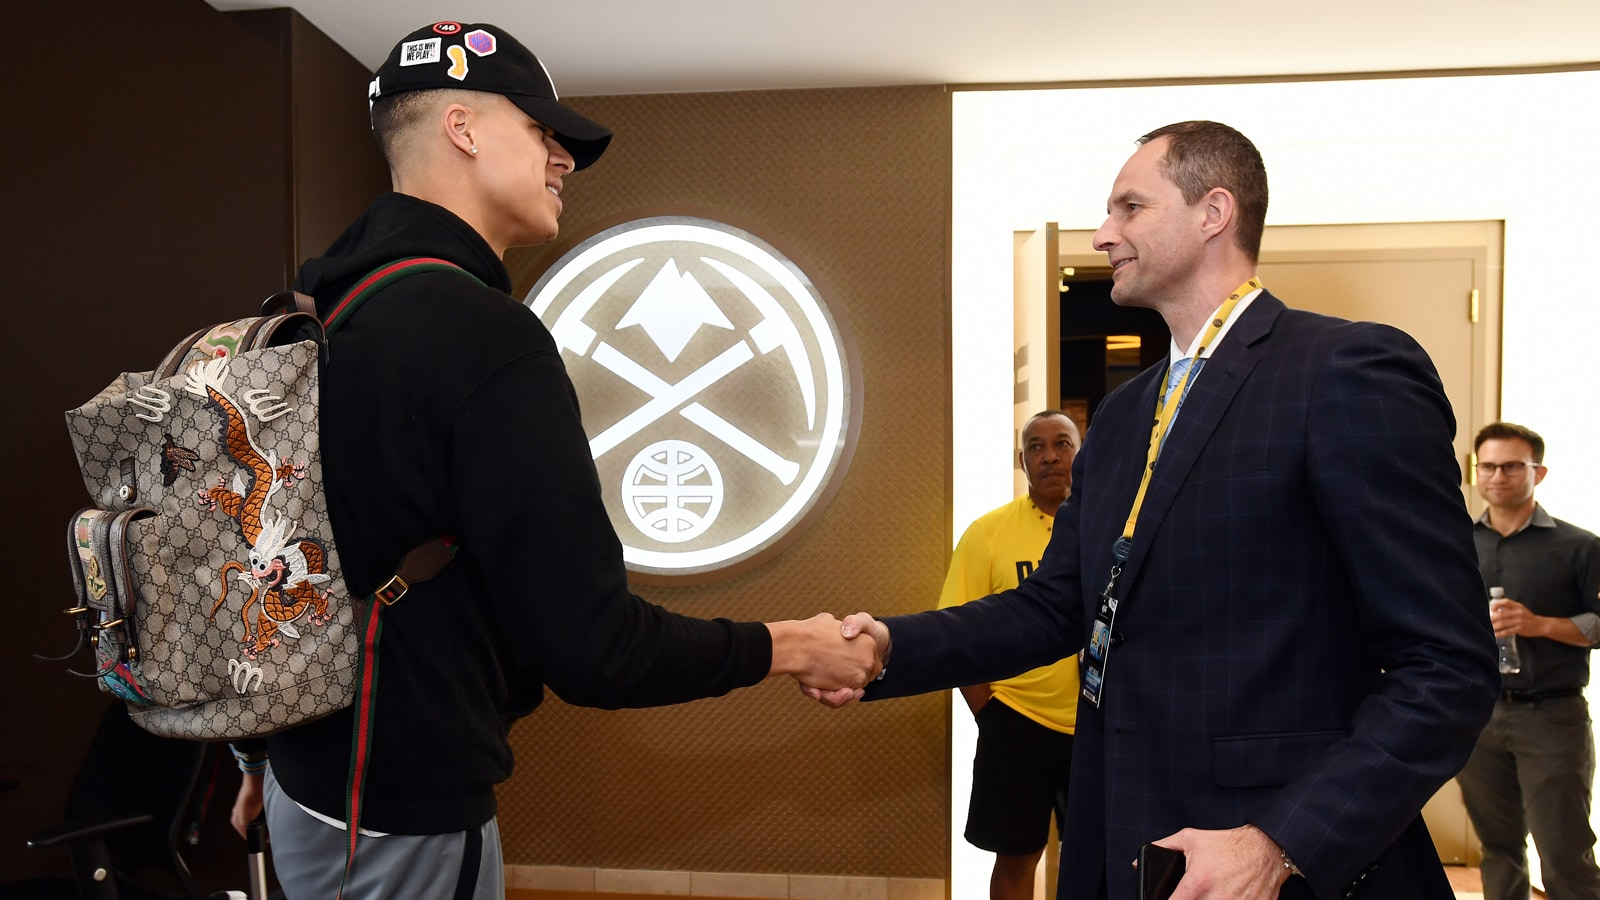 Karnisovas meeting Michael Porter Jr. after selecting him in the 2018 NBA draft.